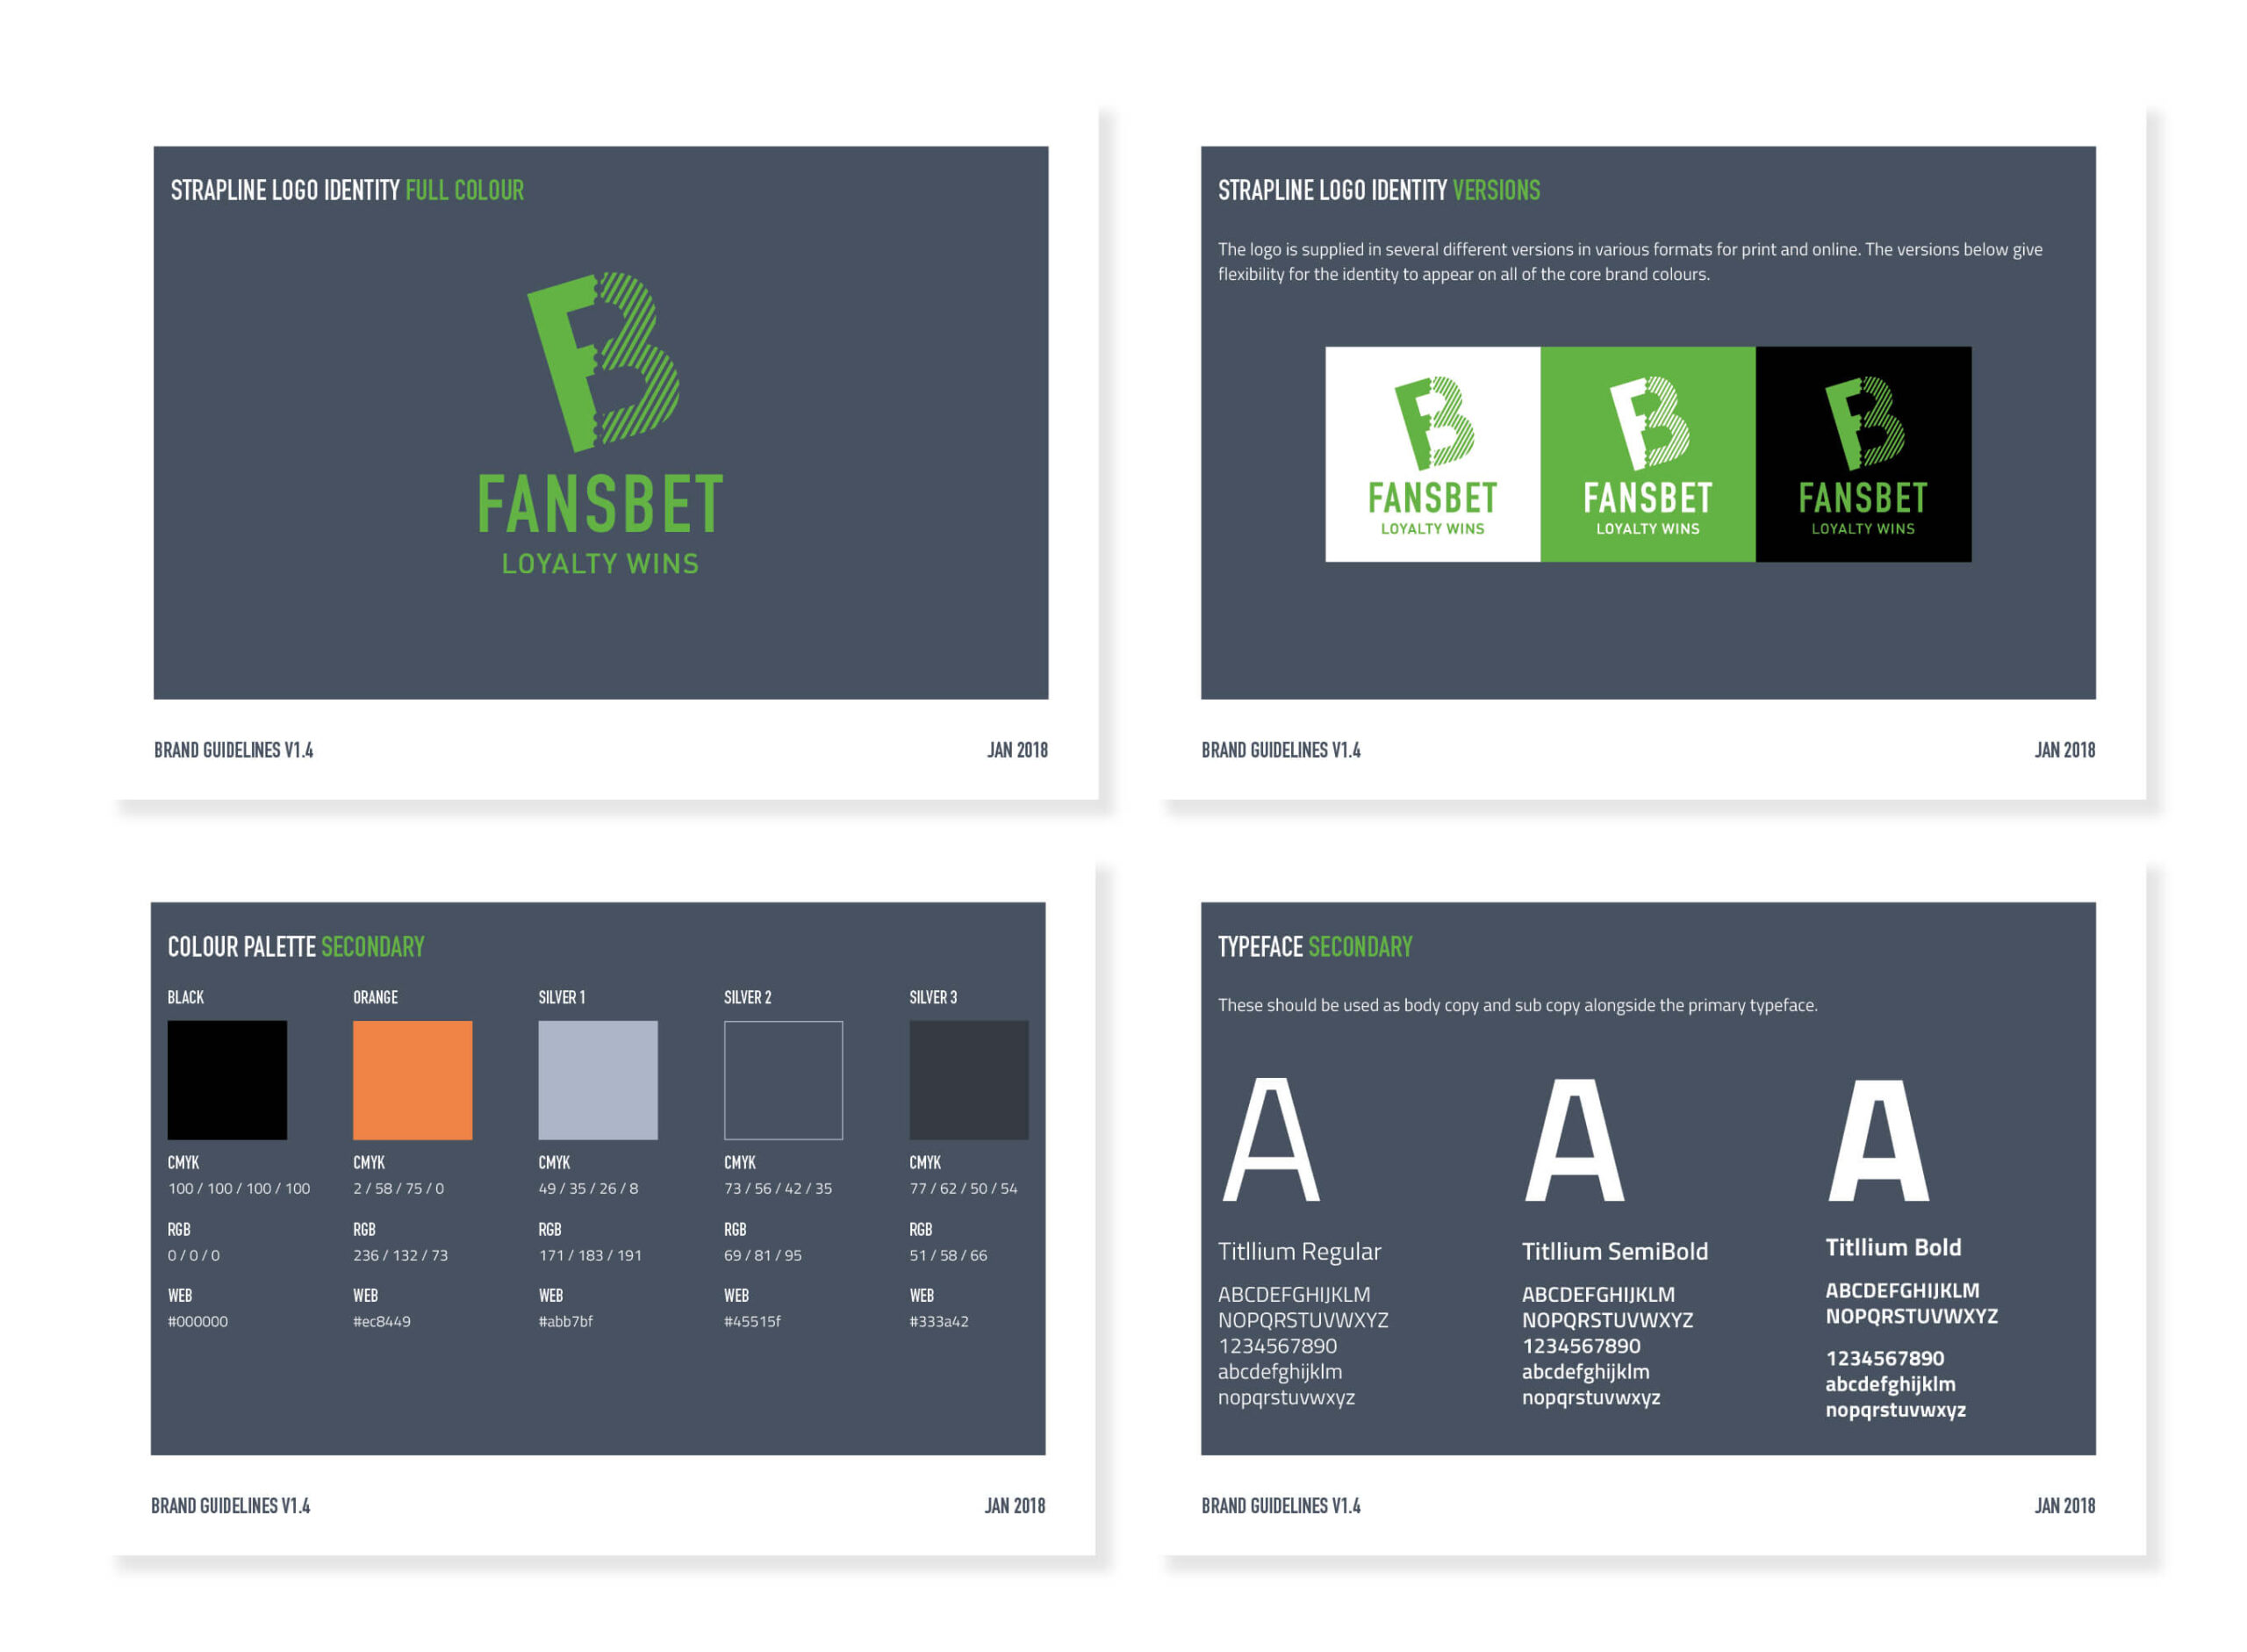 fansbet brand guidelines